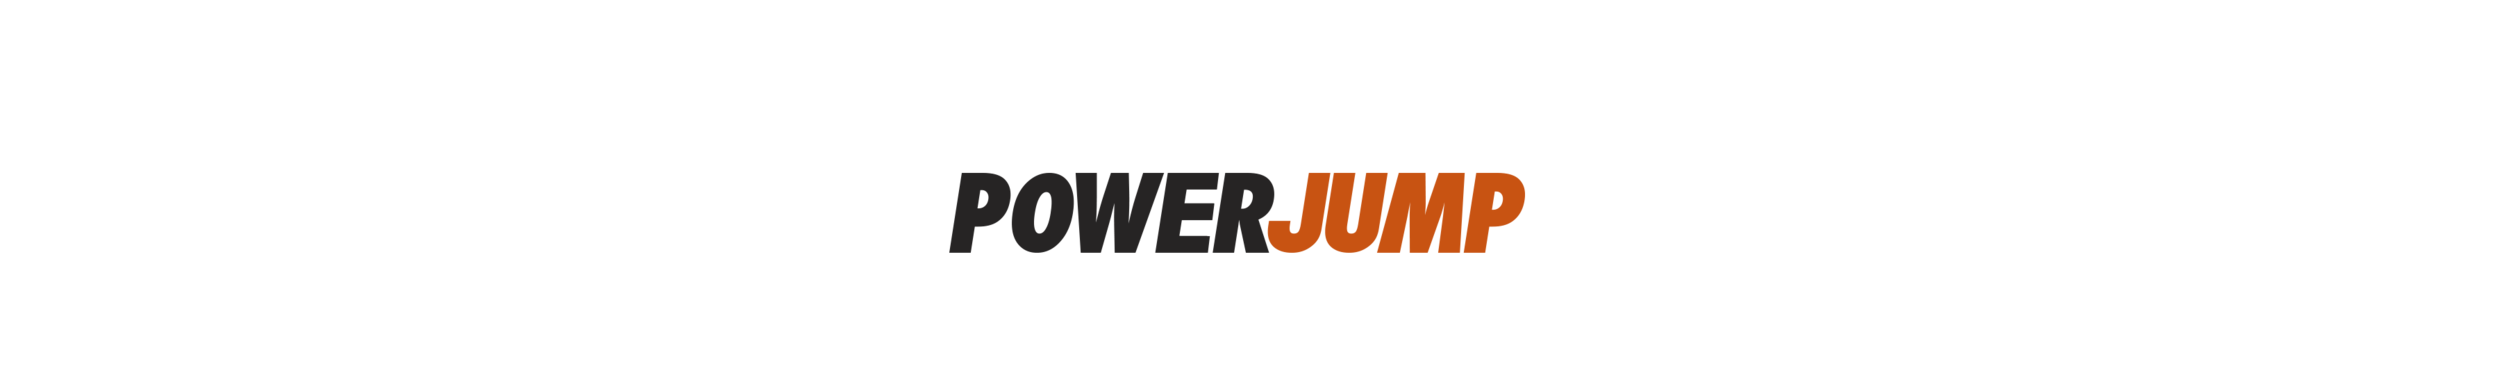 PowerJumppng